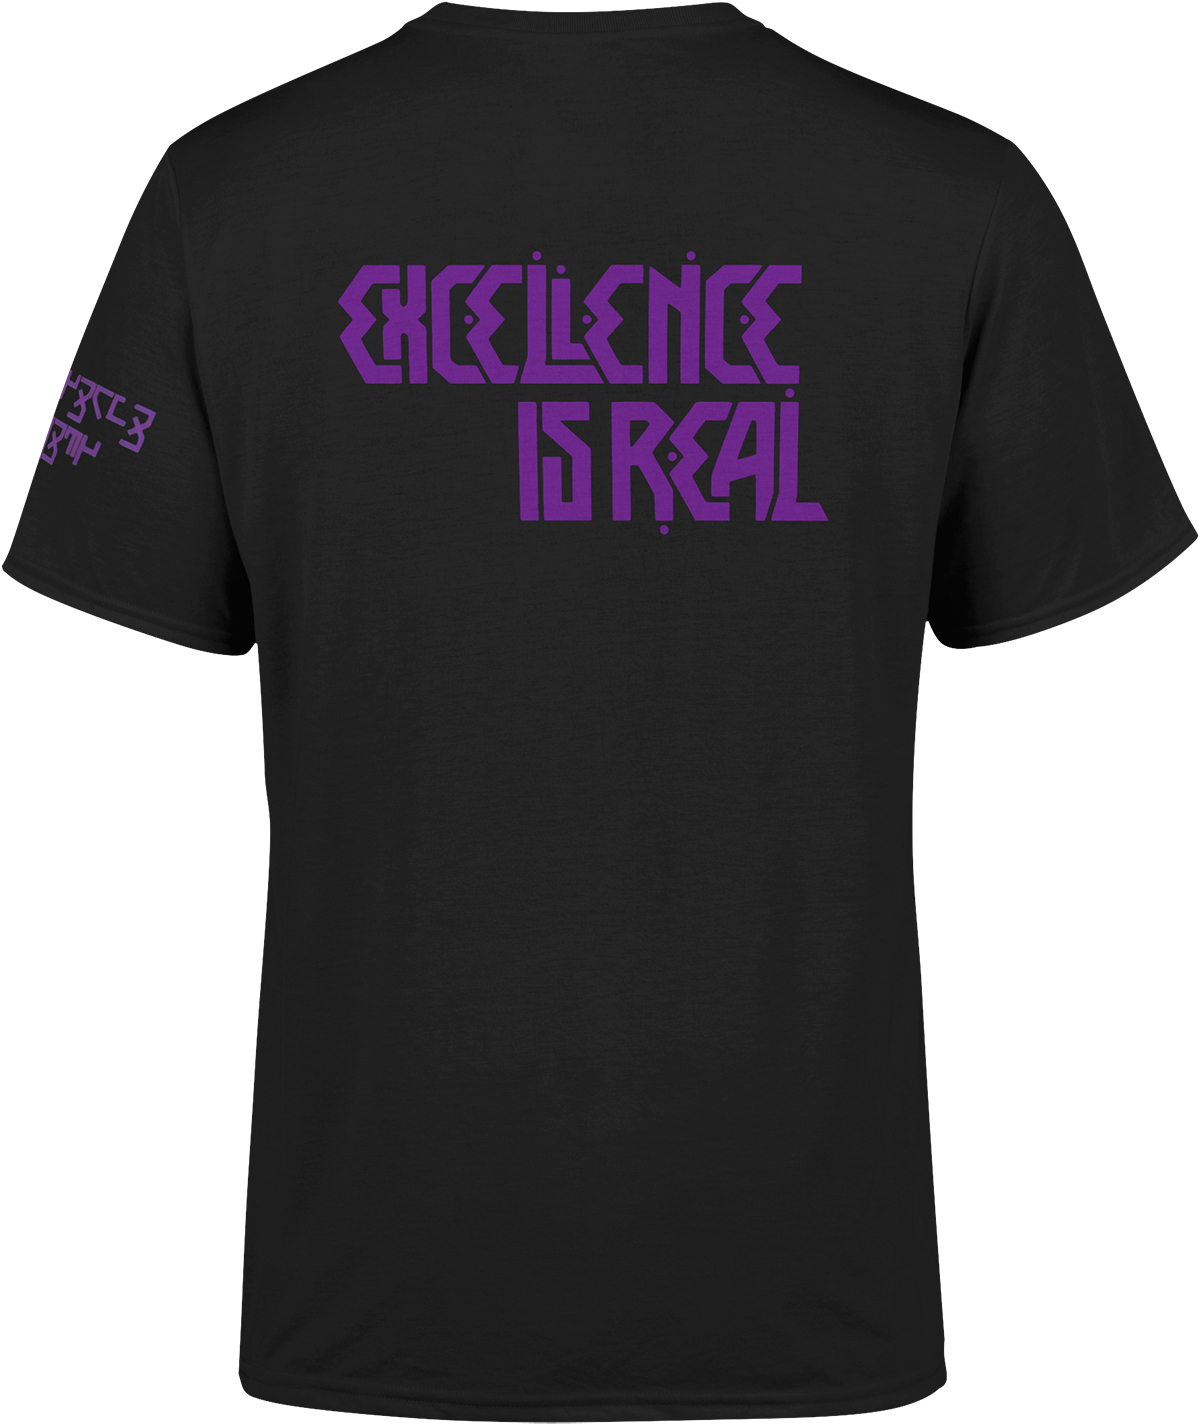 EXCELLENCE SPENCER T/S XL